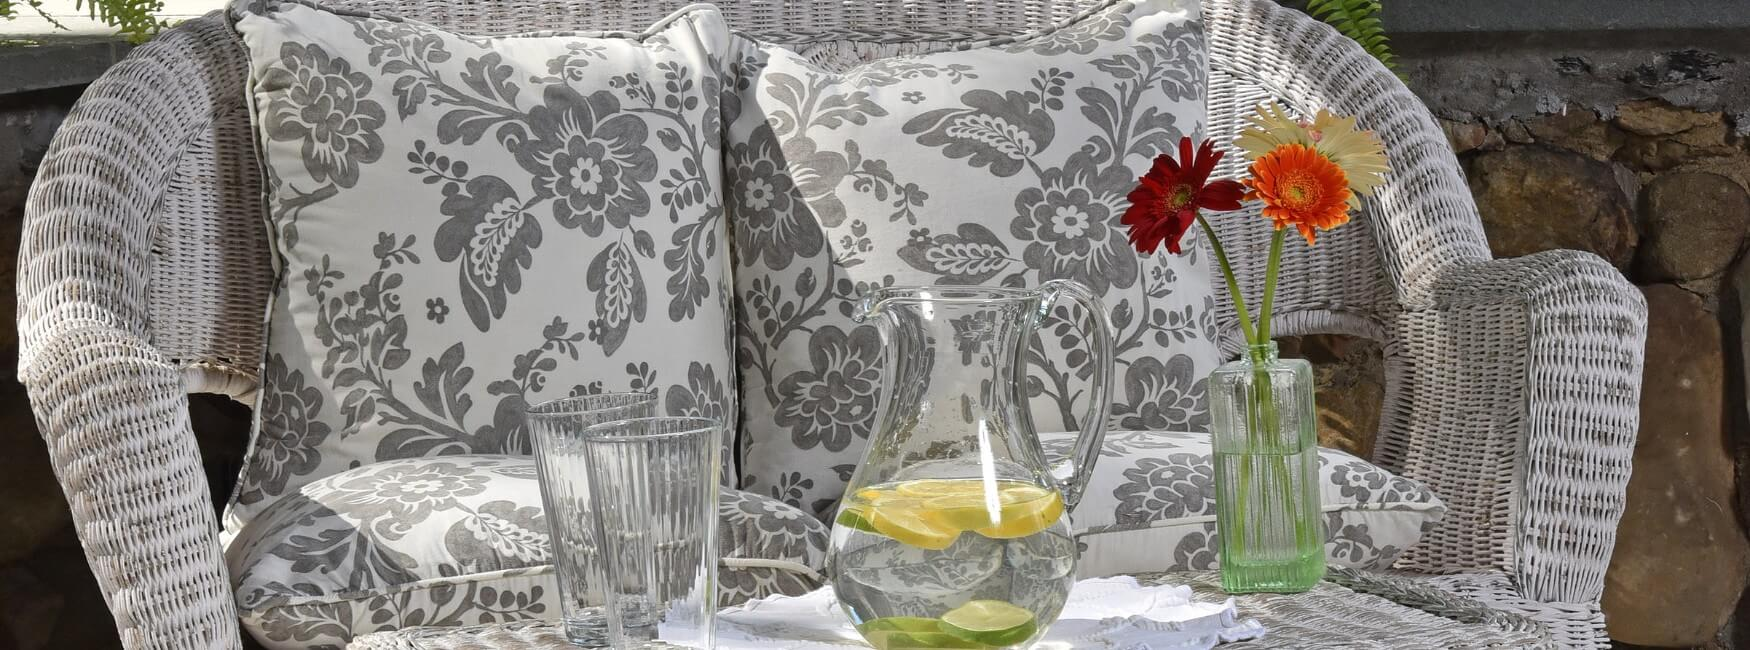 White wicker loveseat with flowered cushions with table holding pitcher of water, glasses and vase of flowers